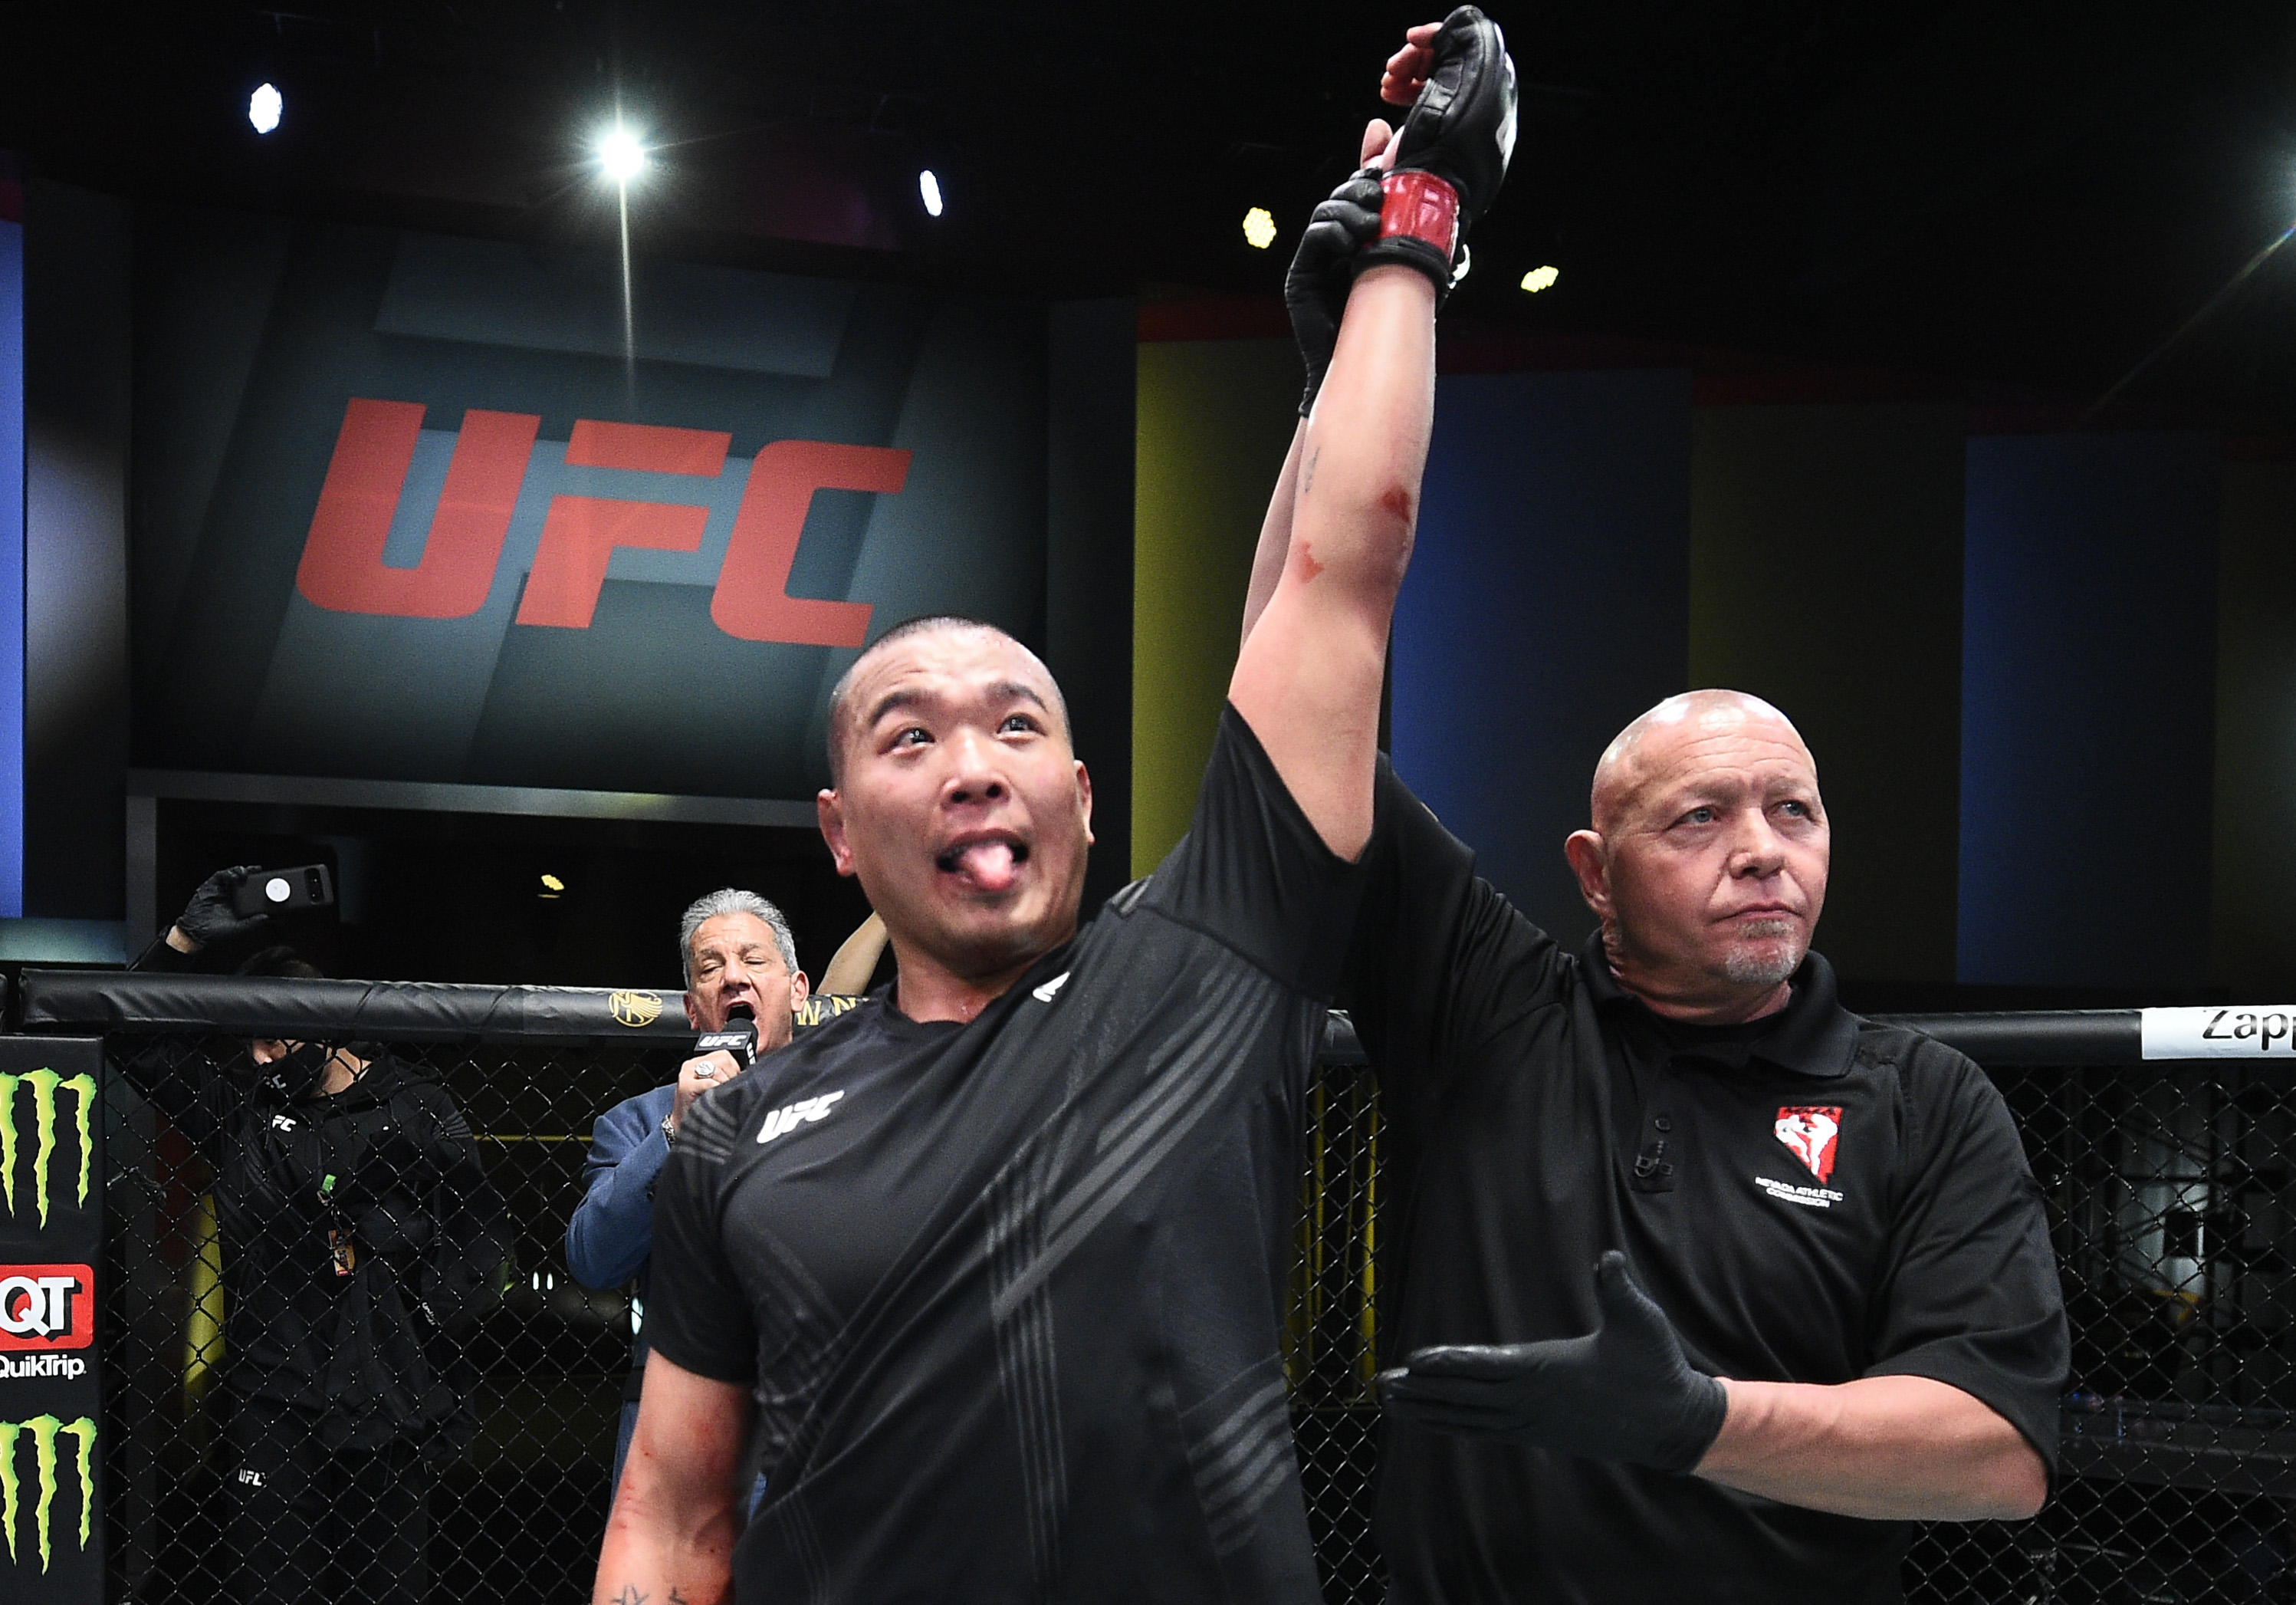 Junyong Park of South Korea reacts after his victory over Tafon Nchukwi of Cameroon in a middleweight fight during the UFC Fight Night event at UFC APEX on May 08, 2021 in Las Vegas, Nevada. (Photo by Chris Unger/Zuffa LLC)